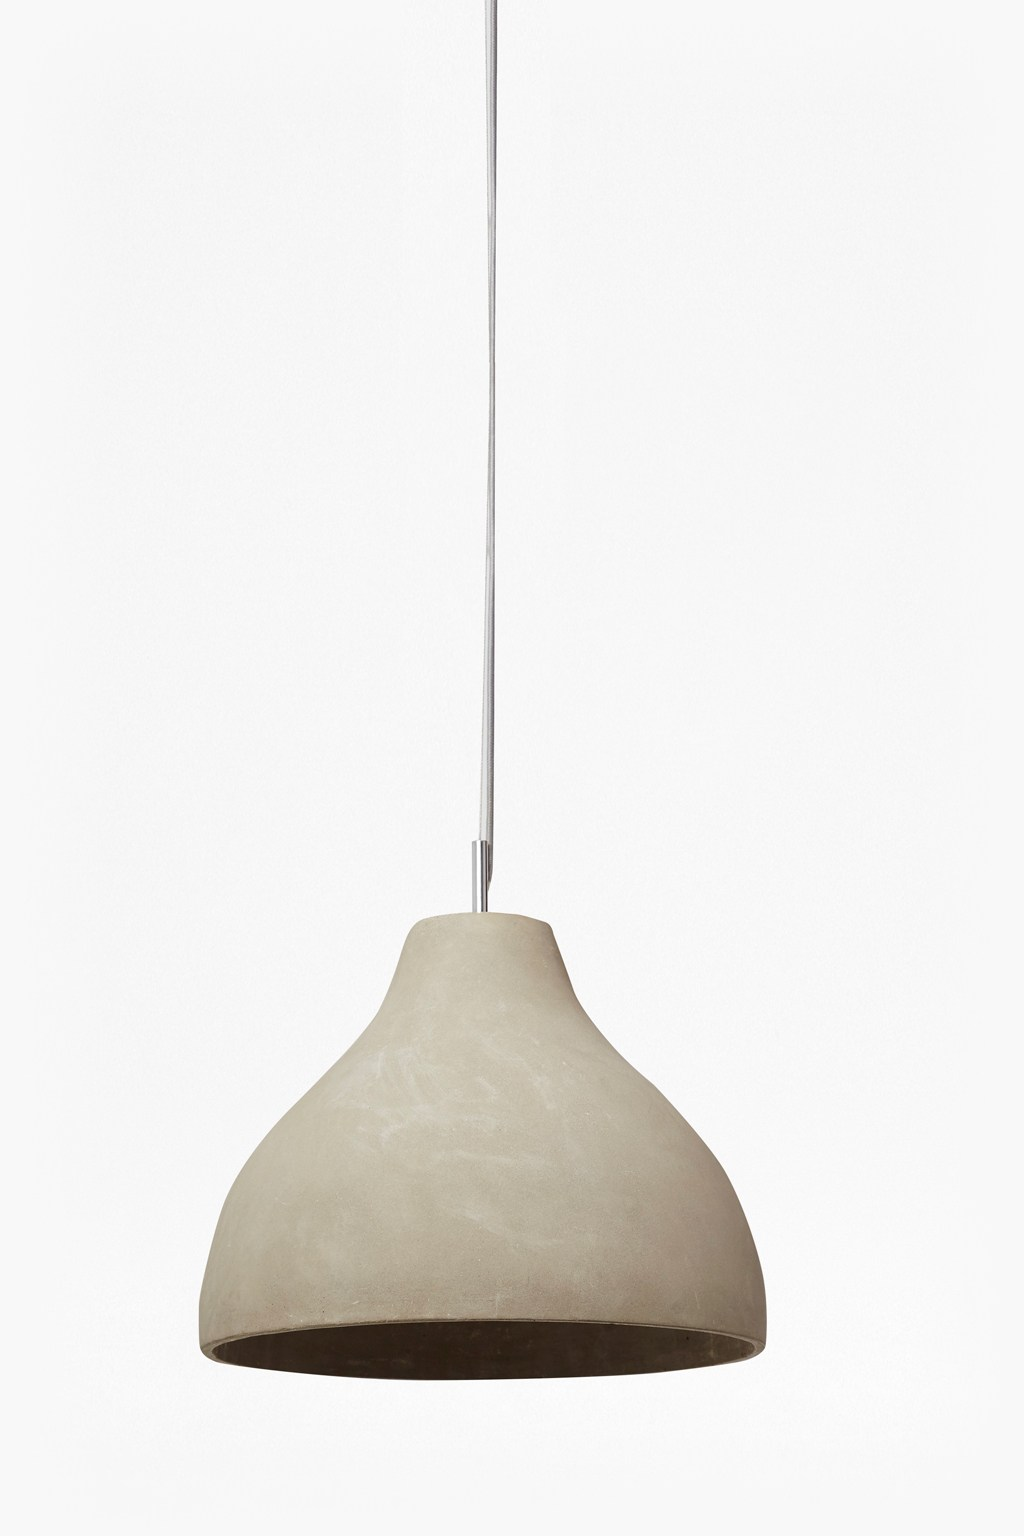 lv view ltd light levico pendant verona larger bz lights lighting ceiling